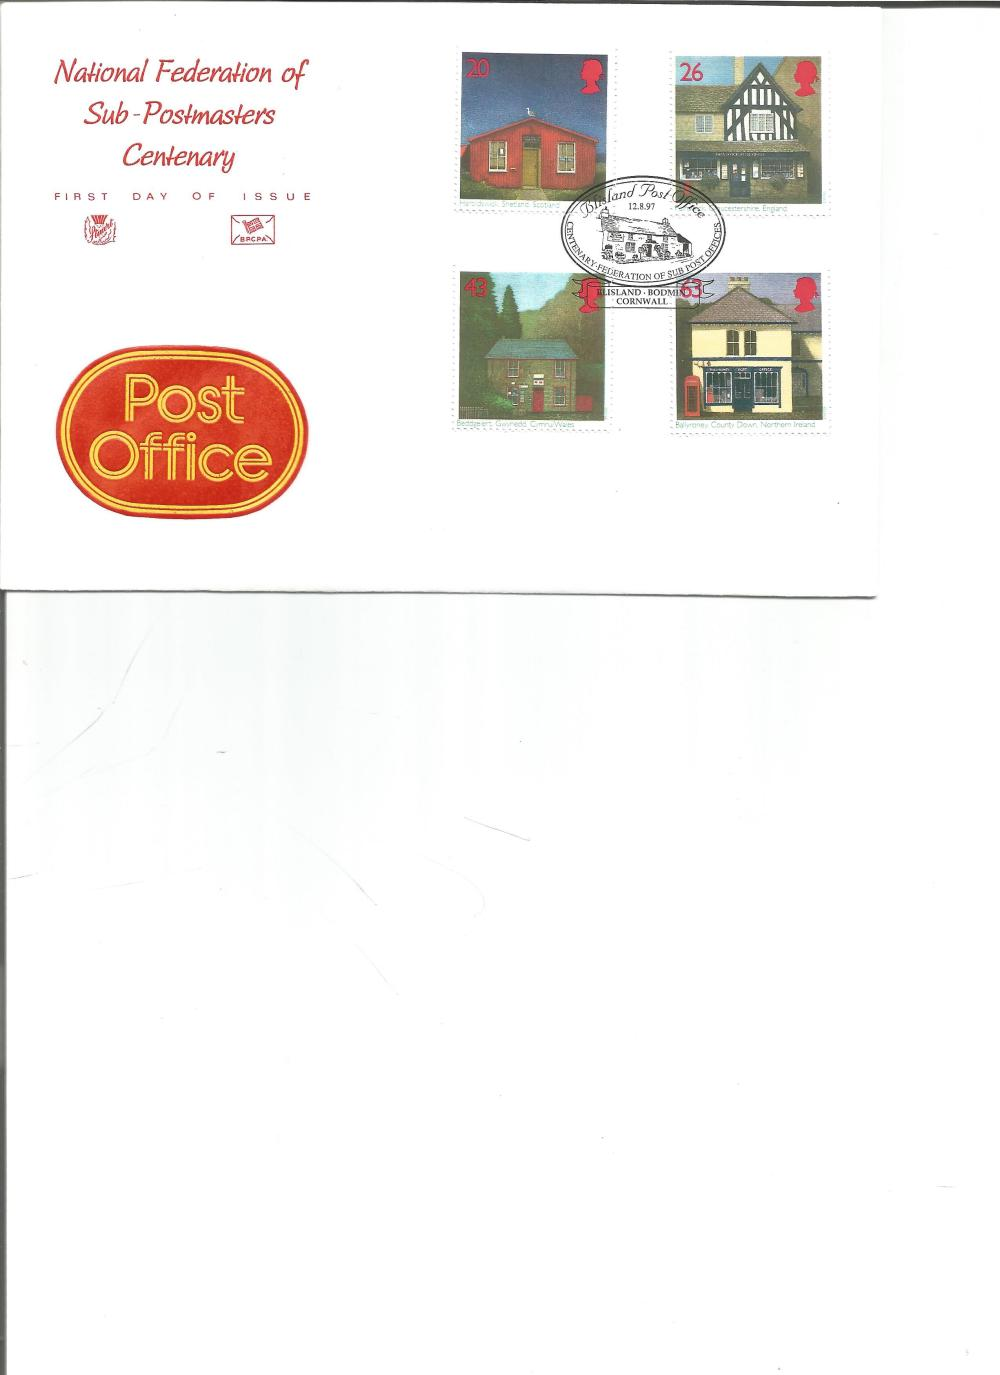 FDC National Federation of Sub Postmasters Centenary c/w set of four commemorative stamps PM